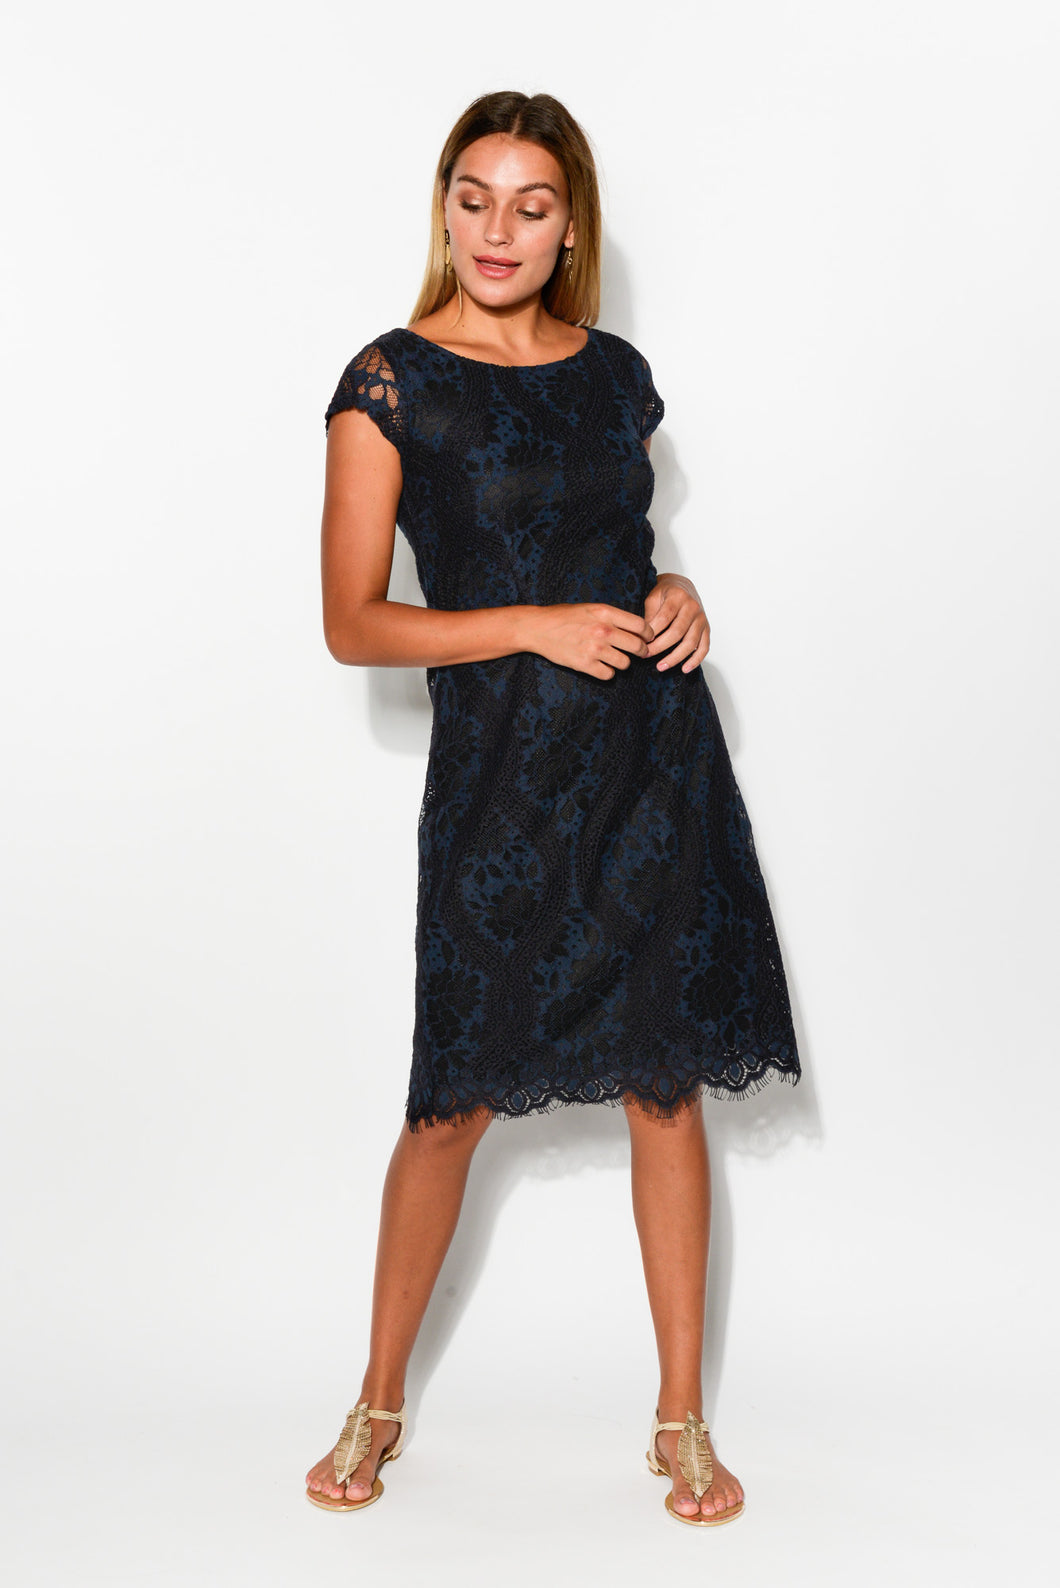 Merida Blue Lace Dress - Blue Bungalow